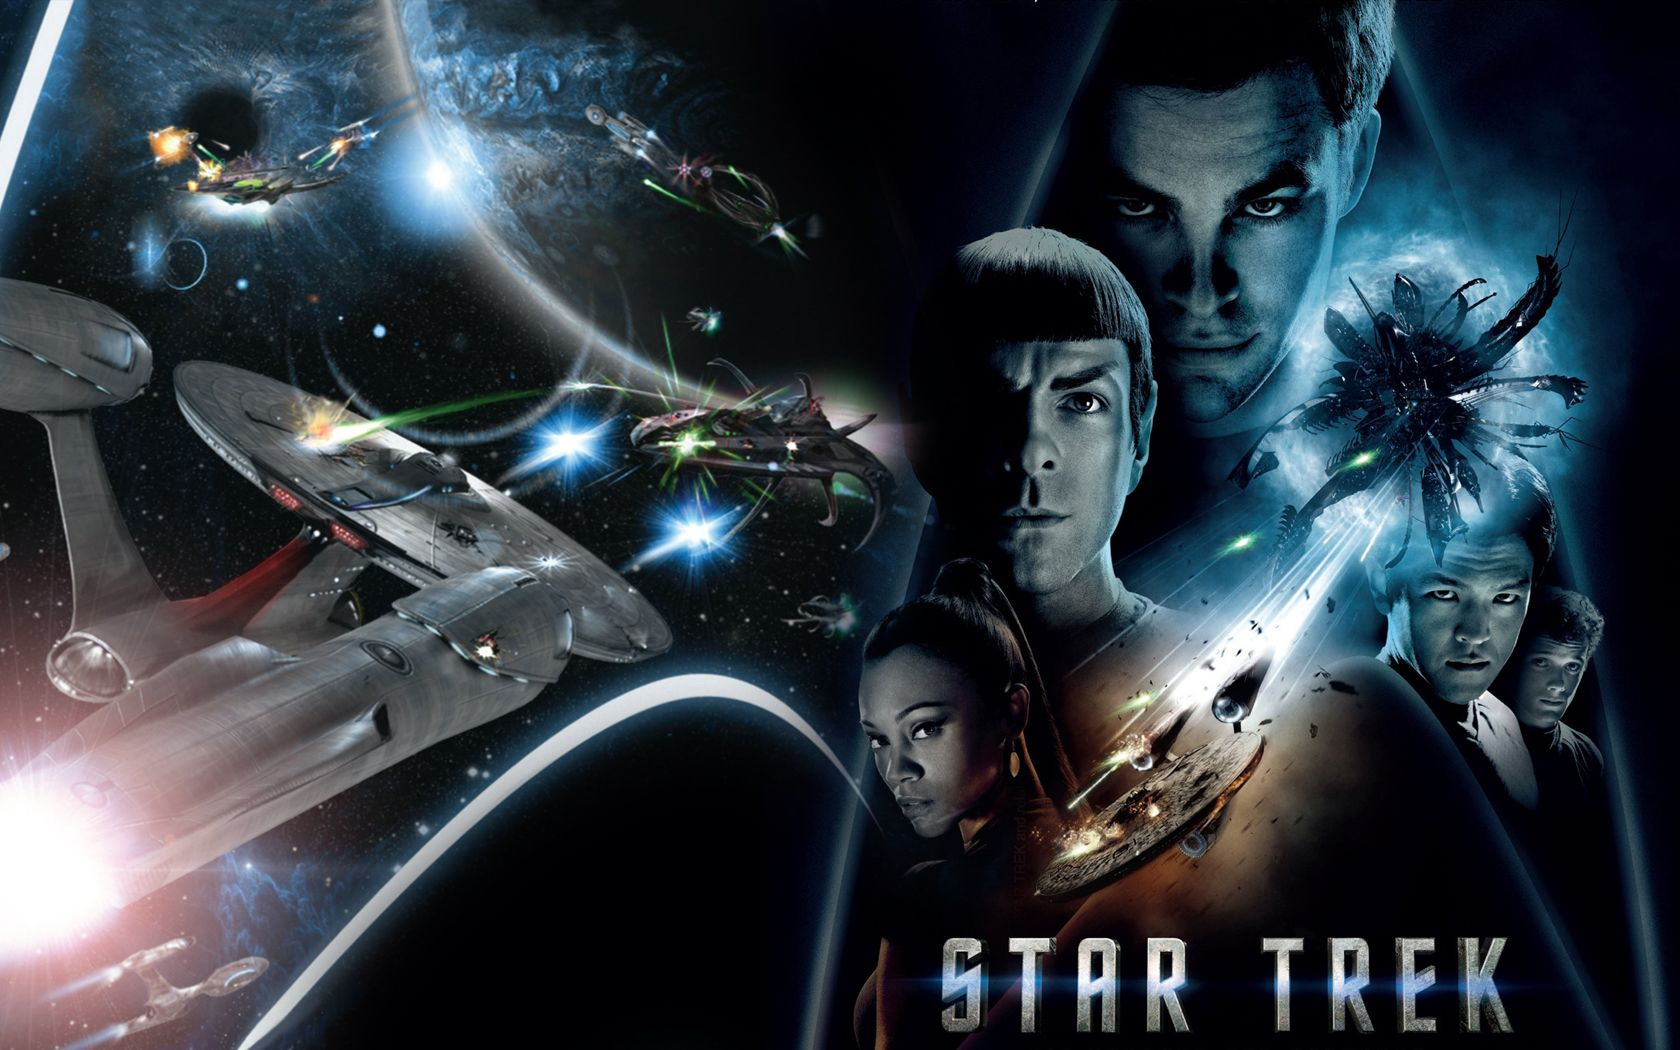 Star Trek 2009 Collage Wallpaper 1680x1050